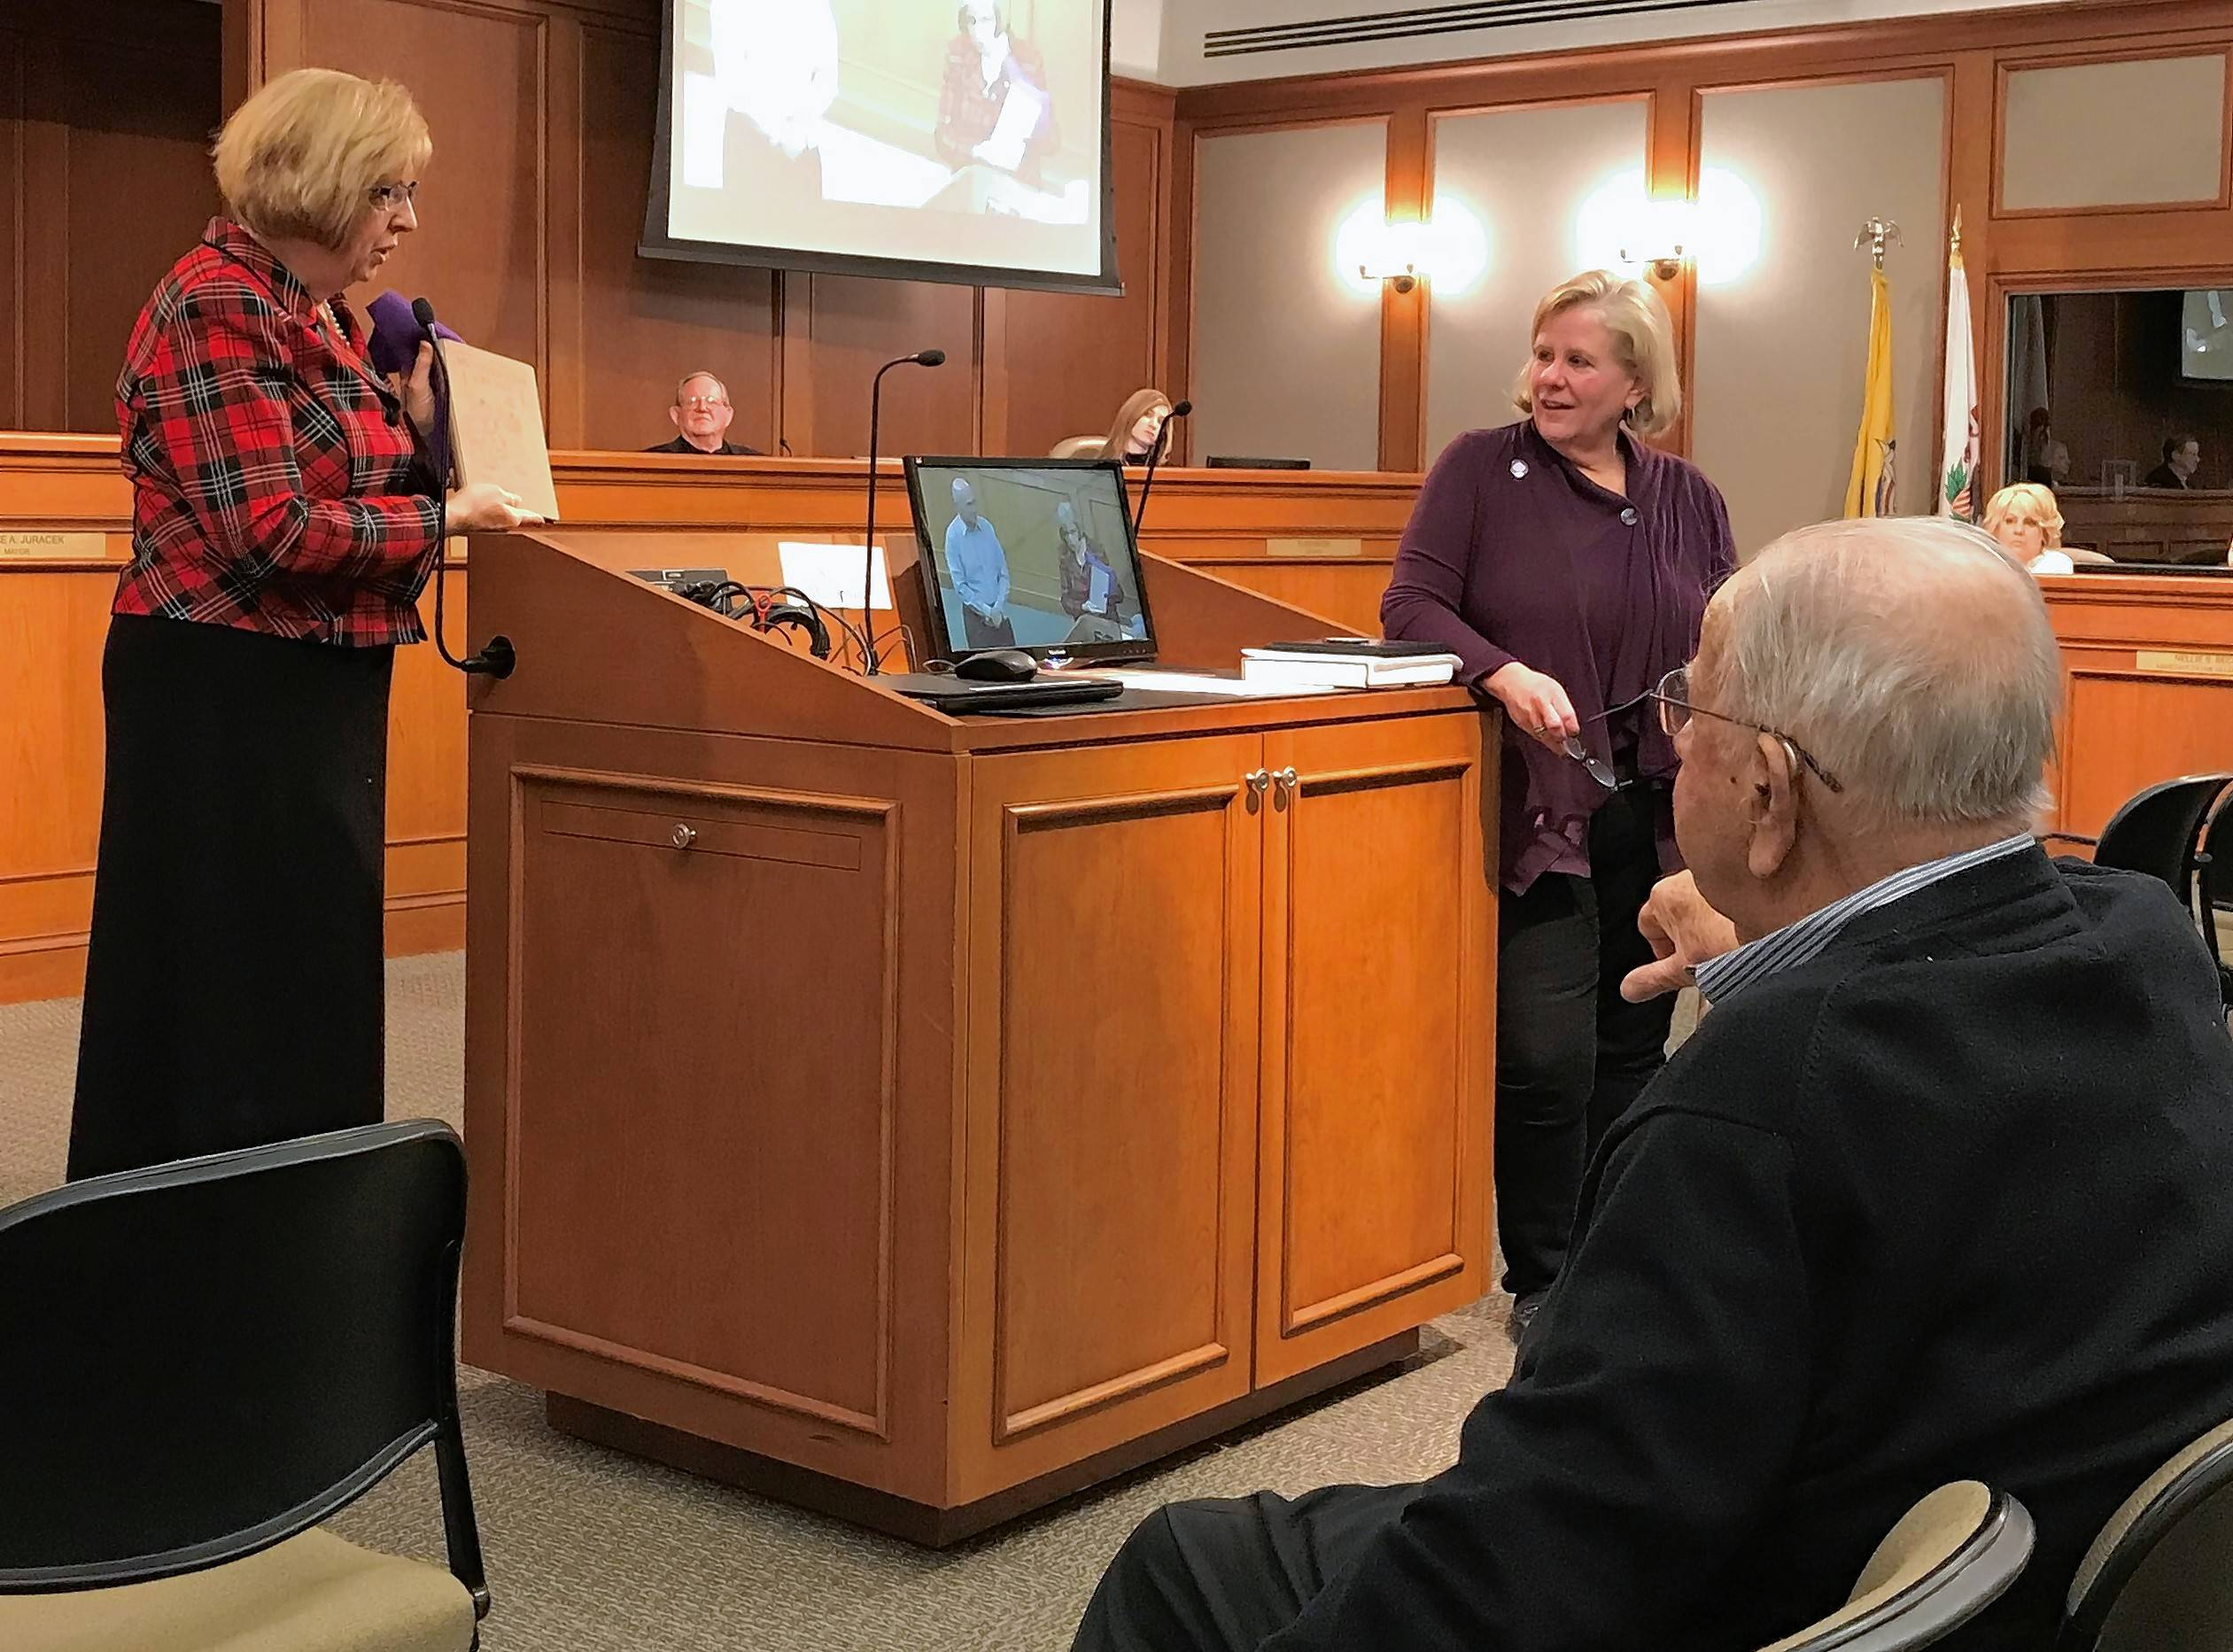 Jean Murphy, right, who co-chaired Mount Prospect's 100-year celebration with former Trustee Leo Floros, seated, were honored with others by Mayor Arlene Juracek, left, at last week's village board meeting.